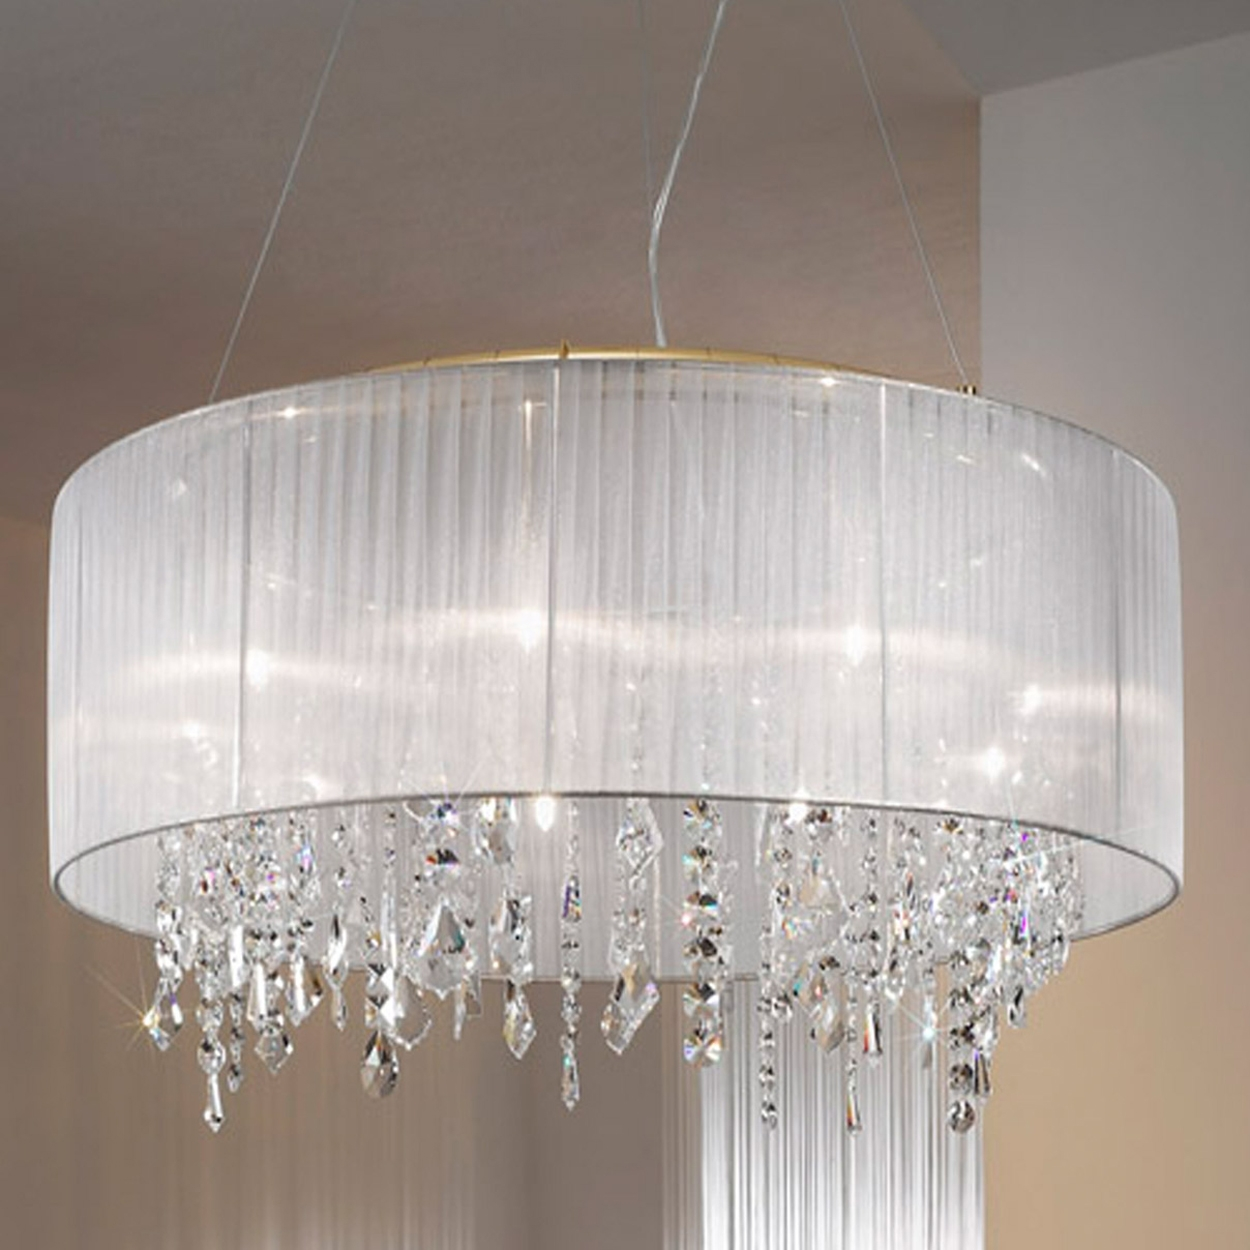 Enchanting Mini Chandelier Lamp Shades Uk 35 Mini Chandelier Lamp Regarding Small Chandelier Lamp Shades (Image 11 of 25)